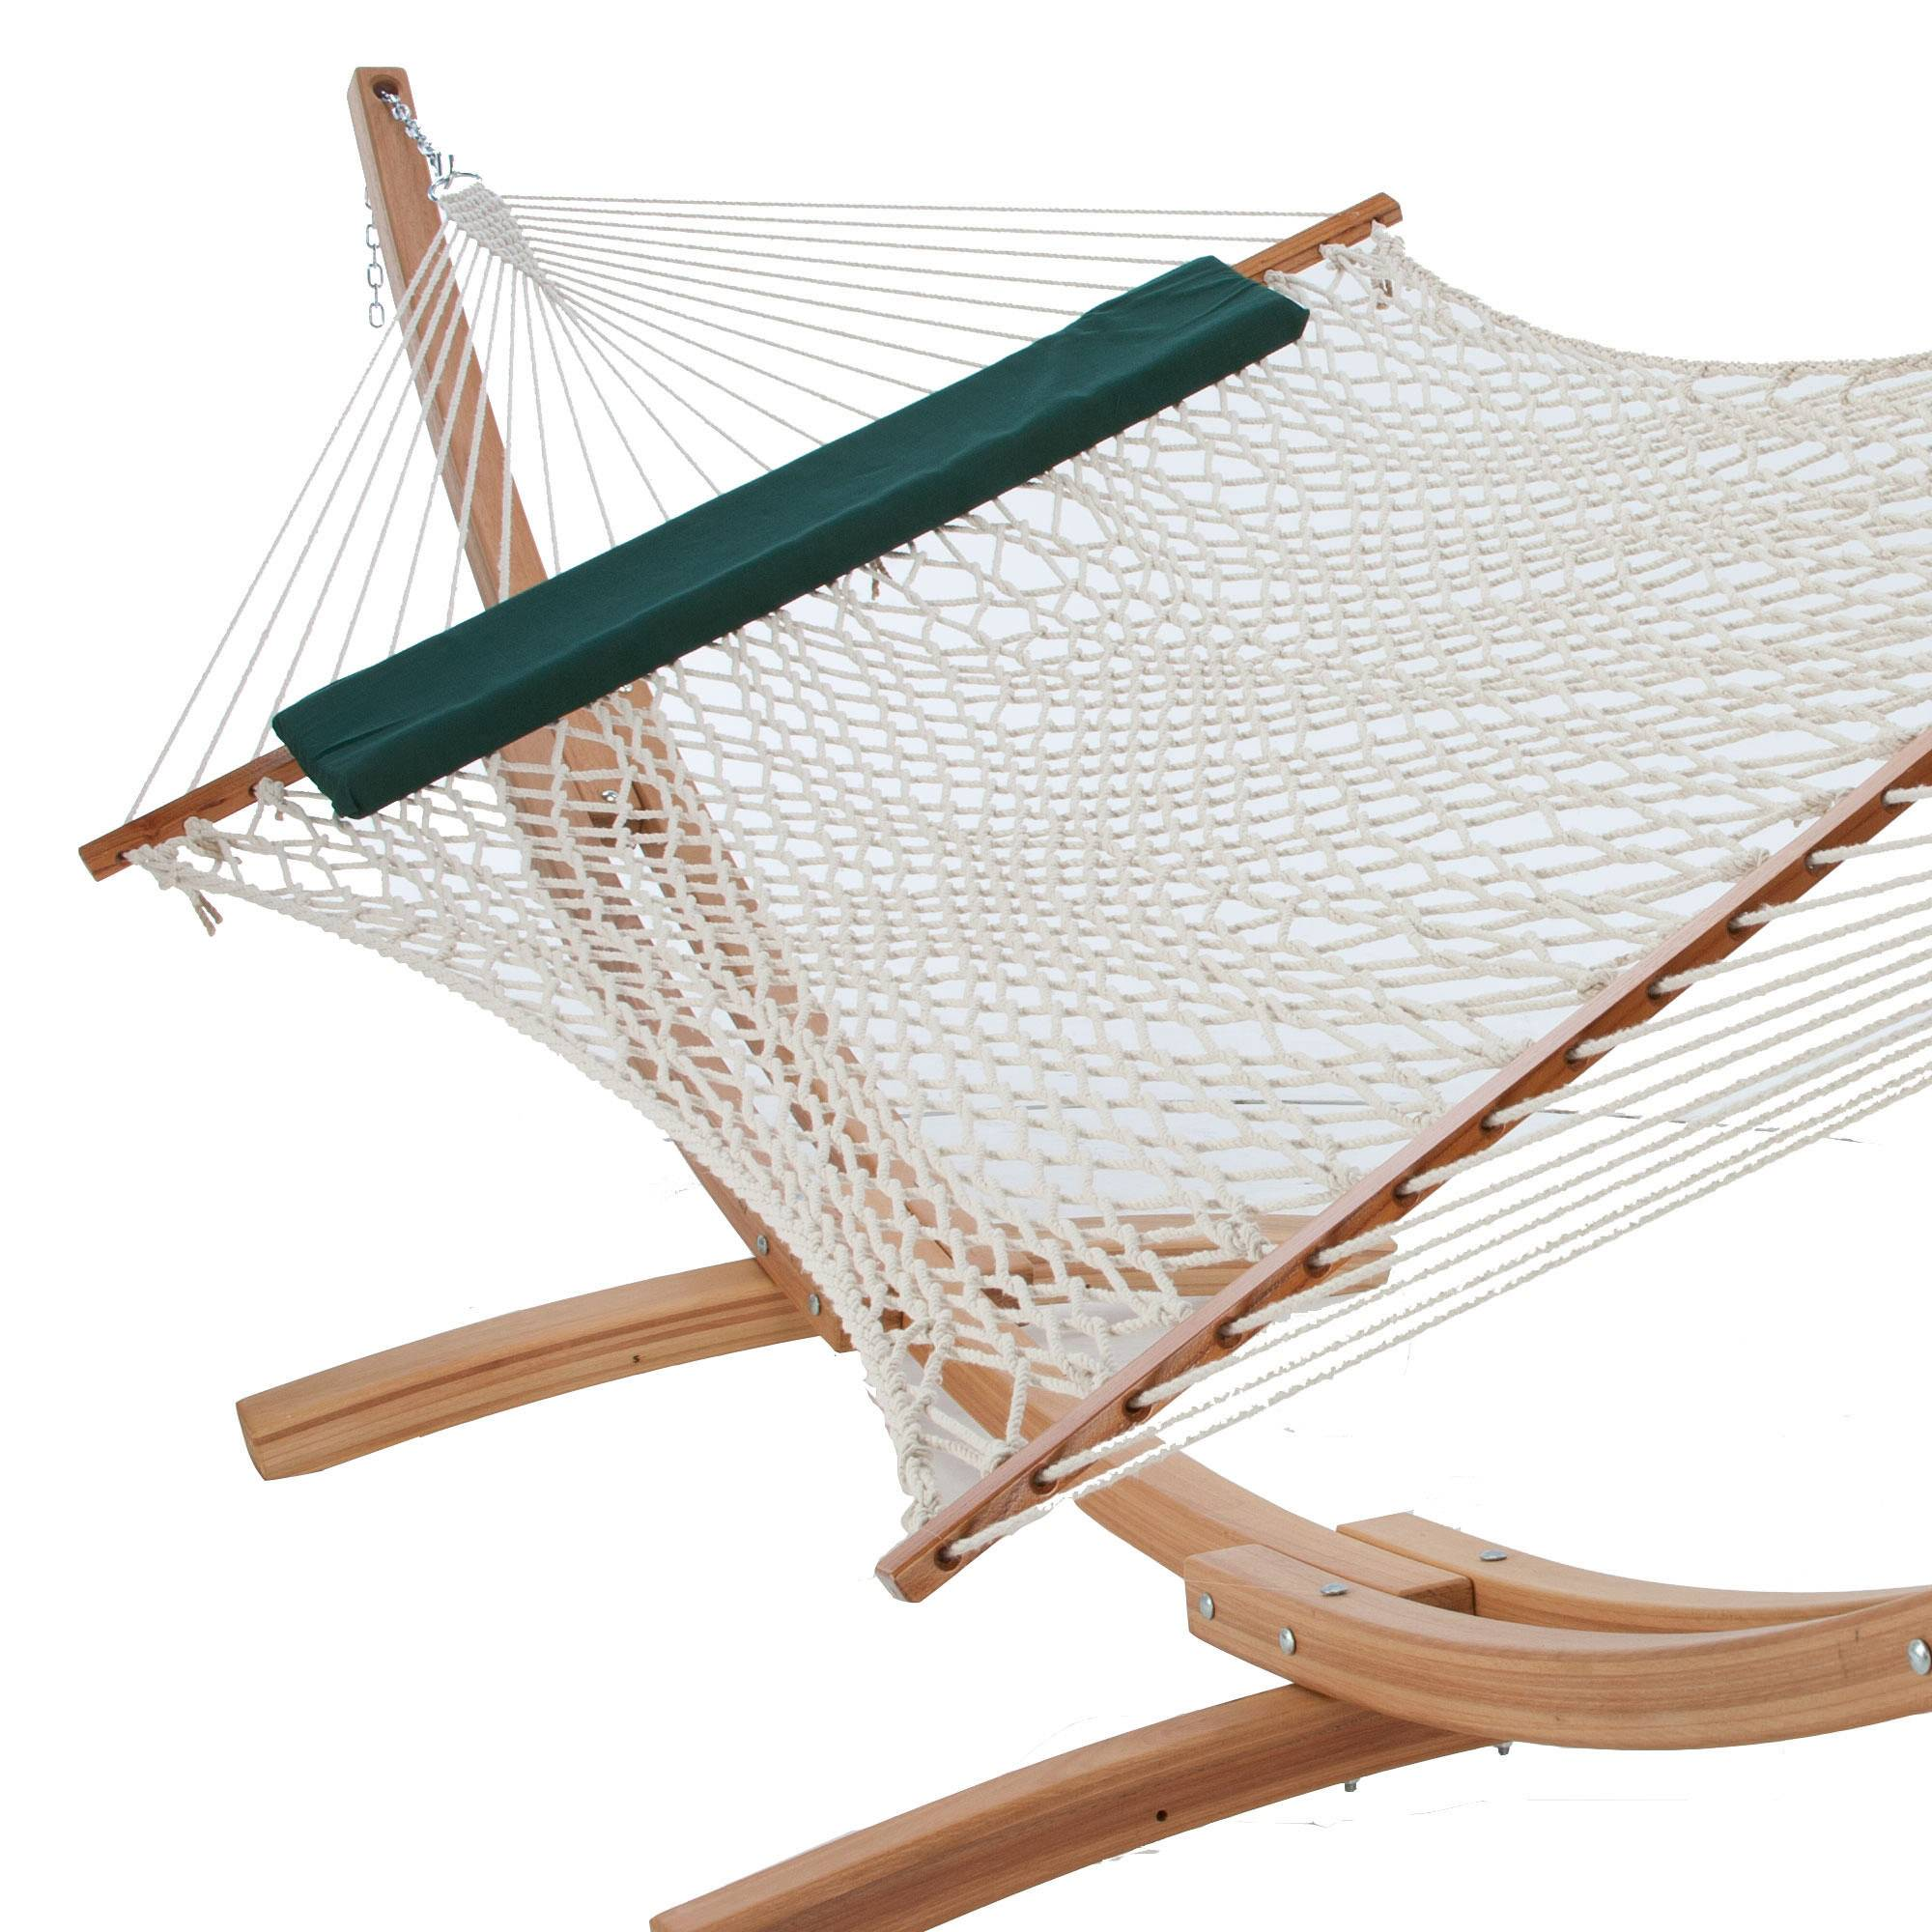 Medium image of deluxe rope hammock  bo